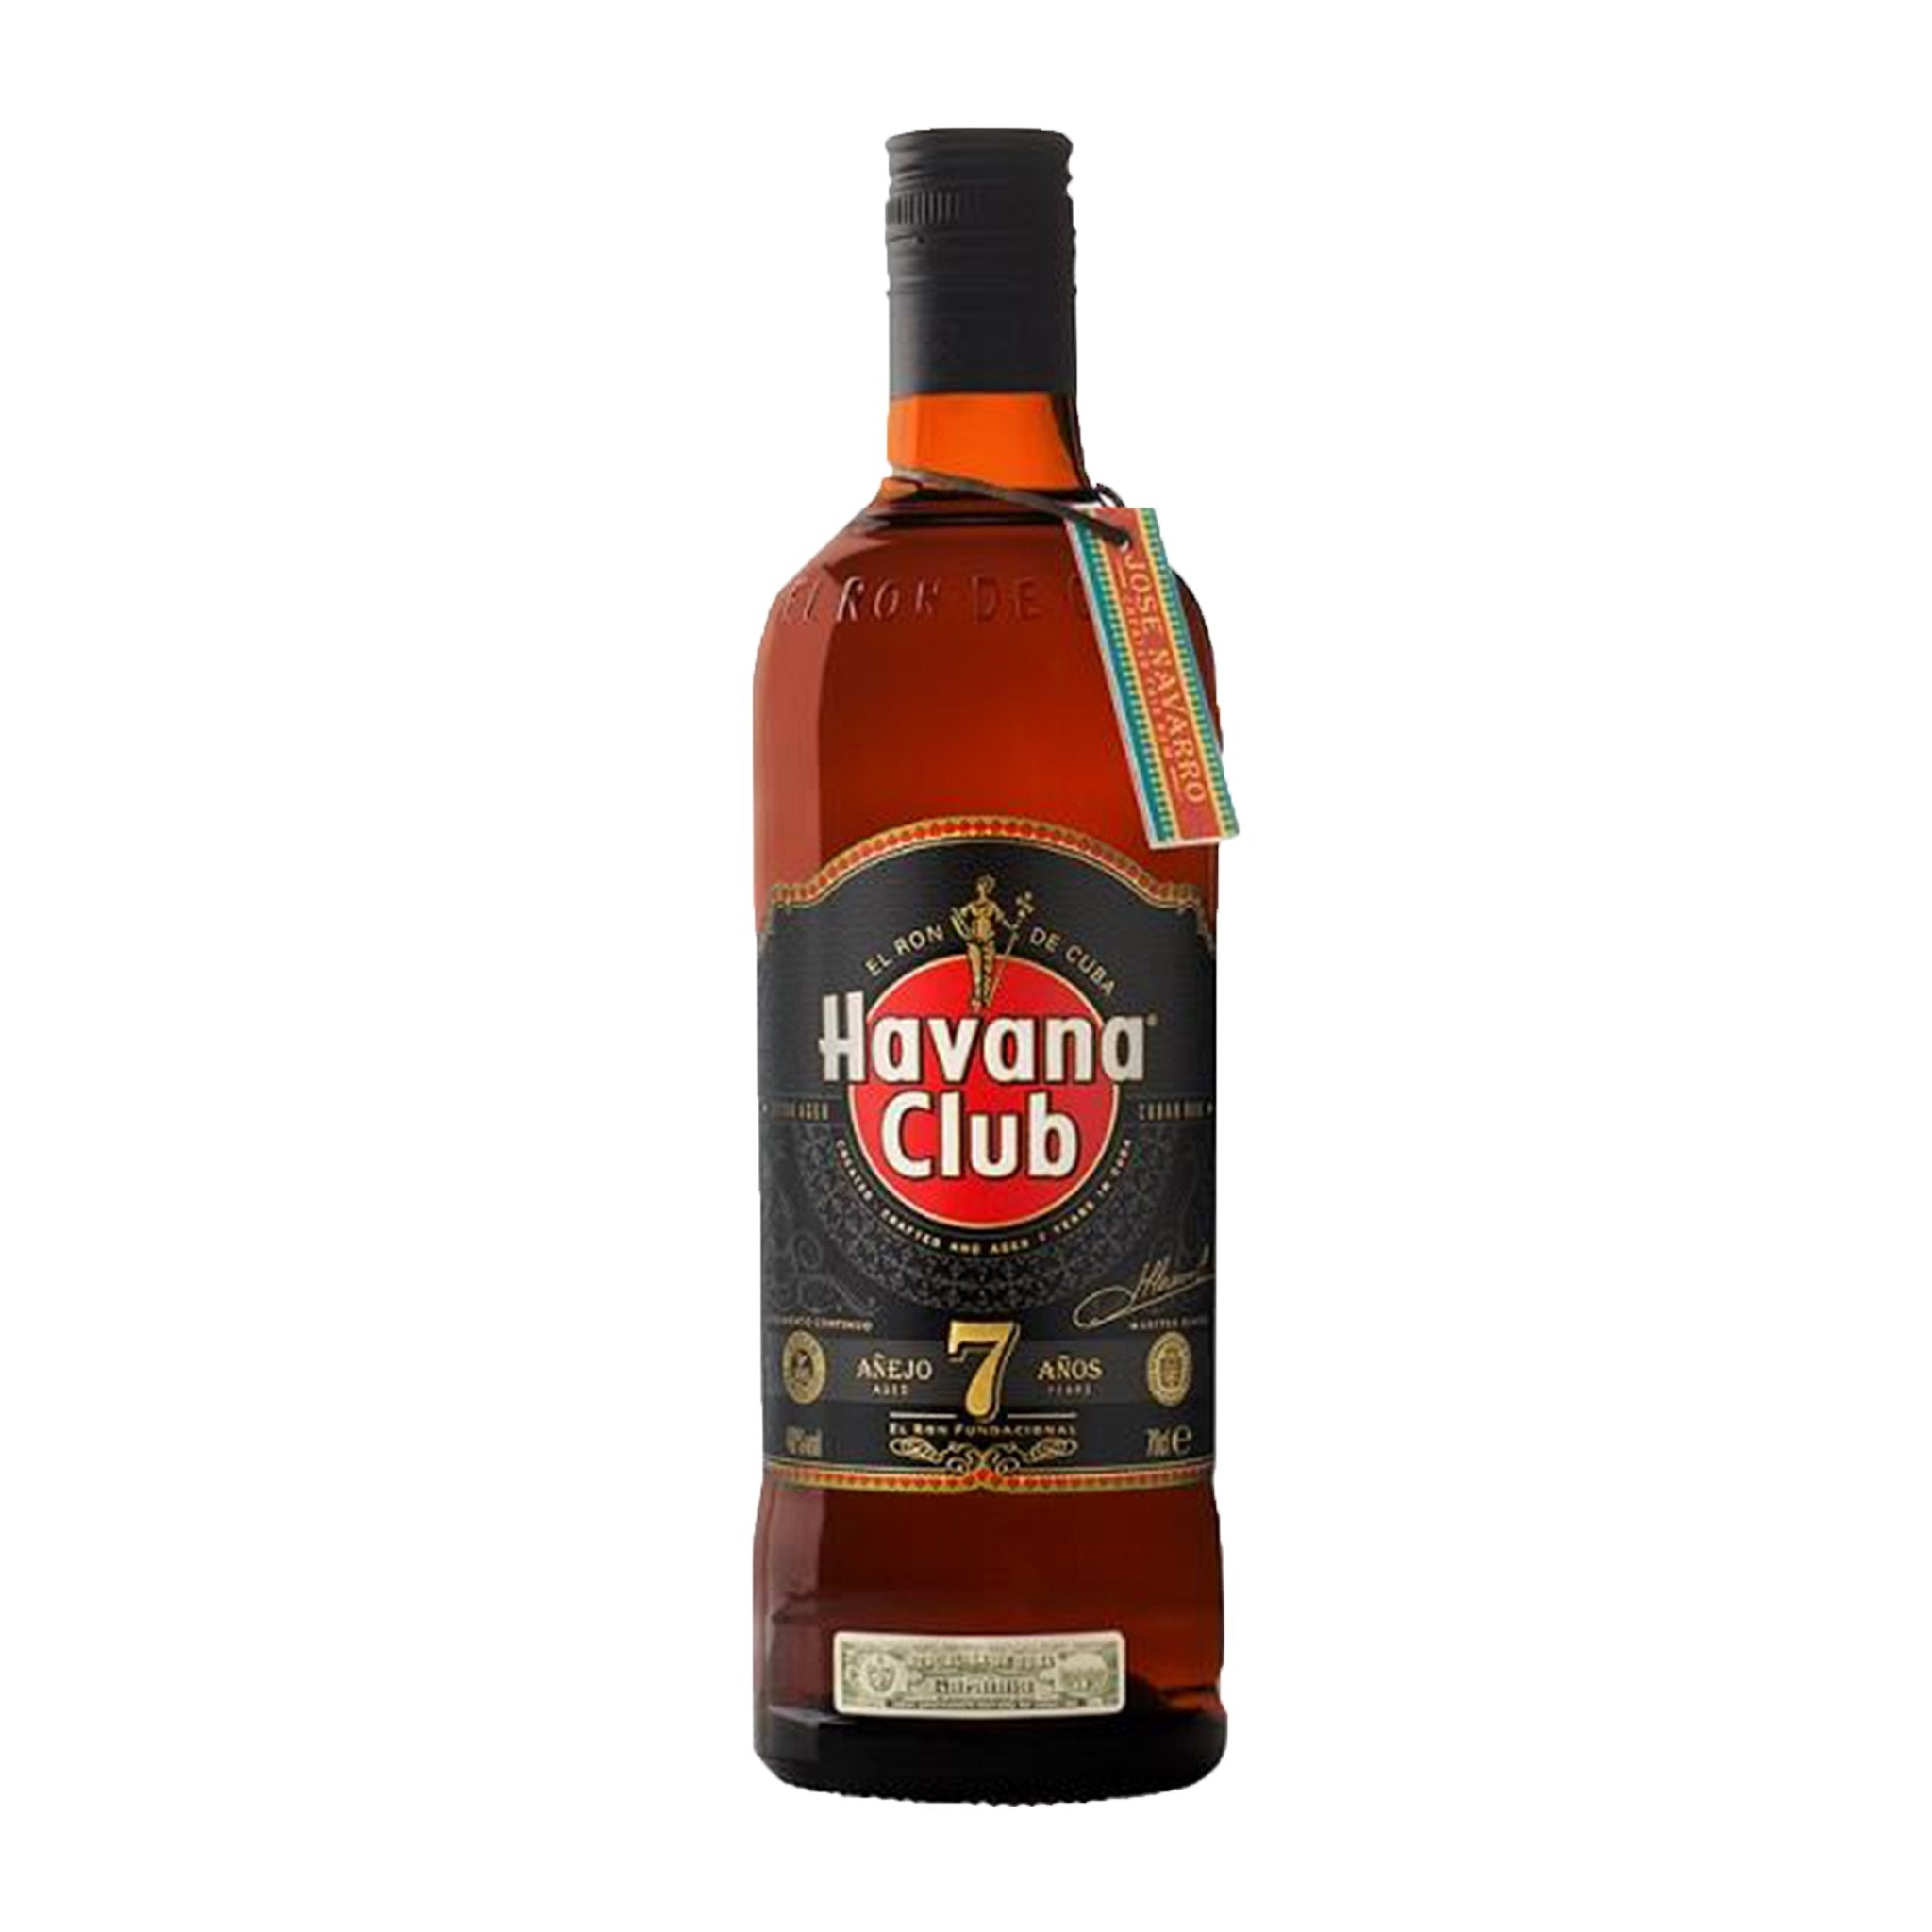 Havana Club 7 Year Old Rum, Alcoholic Beverages by Drinks Shop